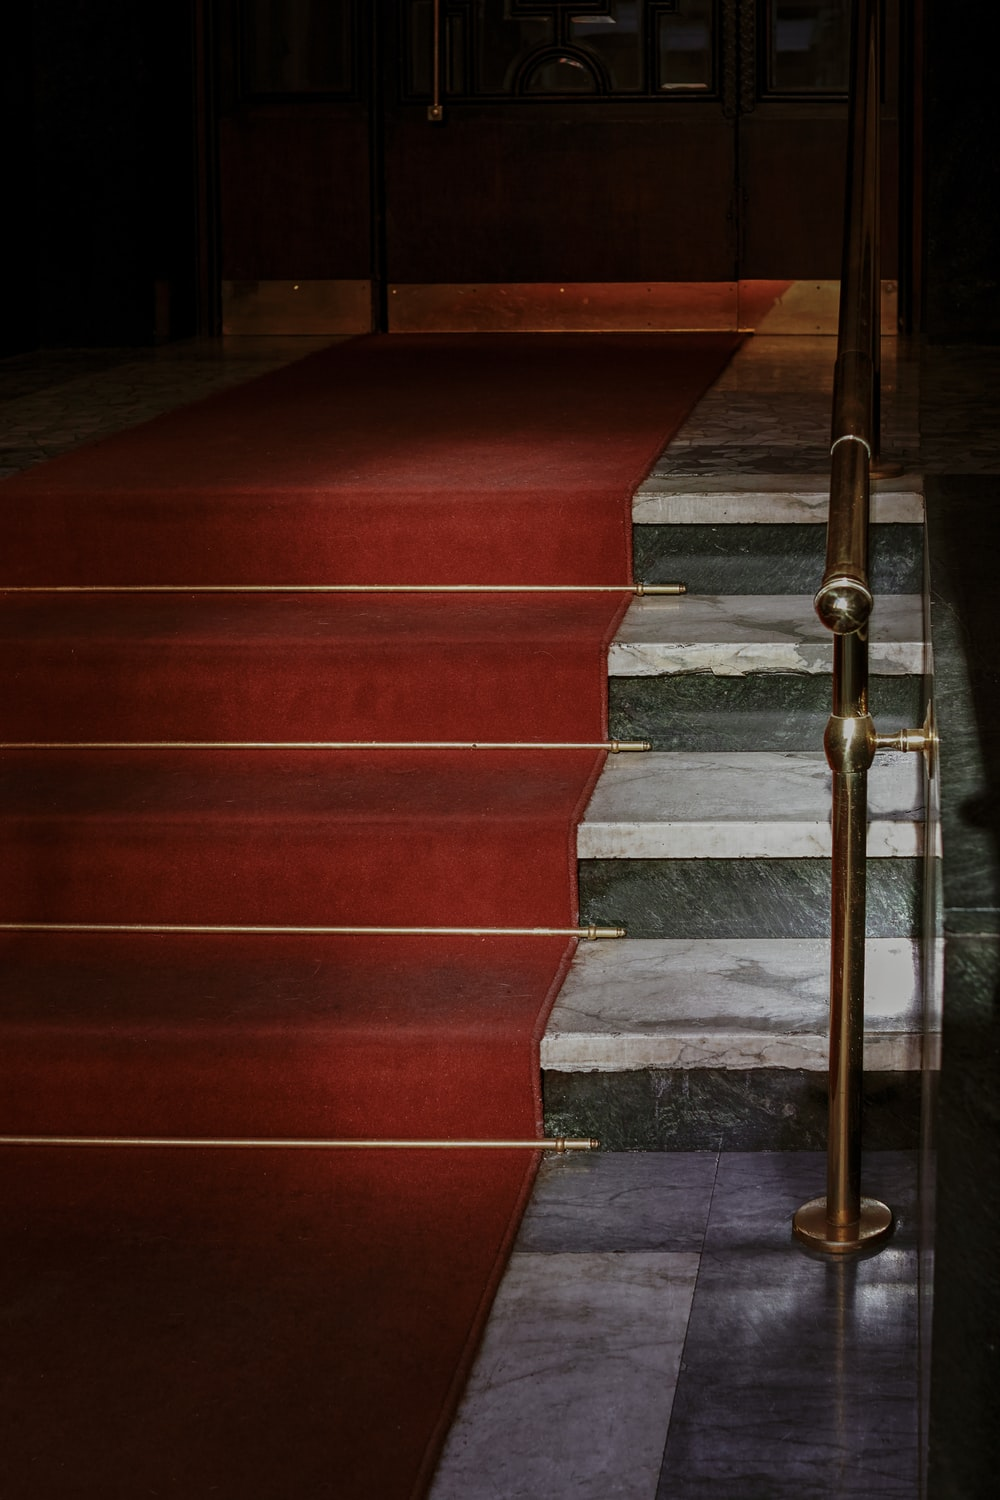 red concrete staircase with stainless steel railings